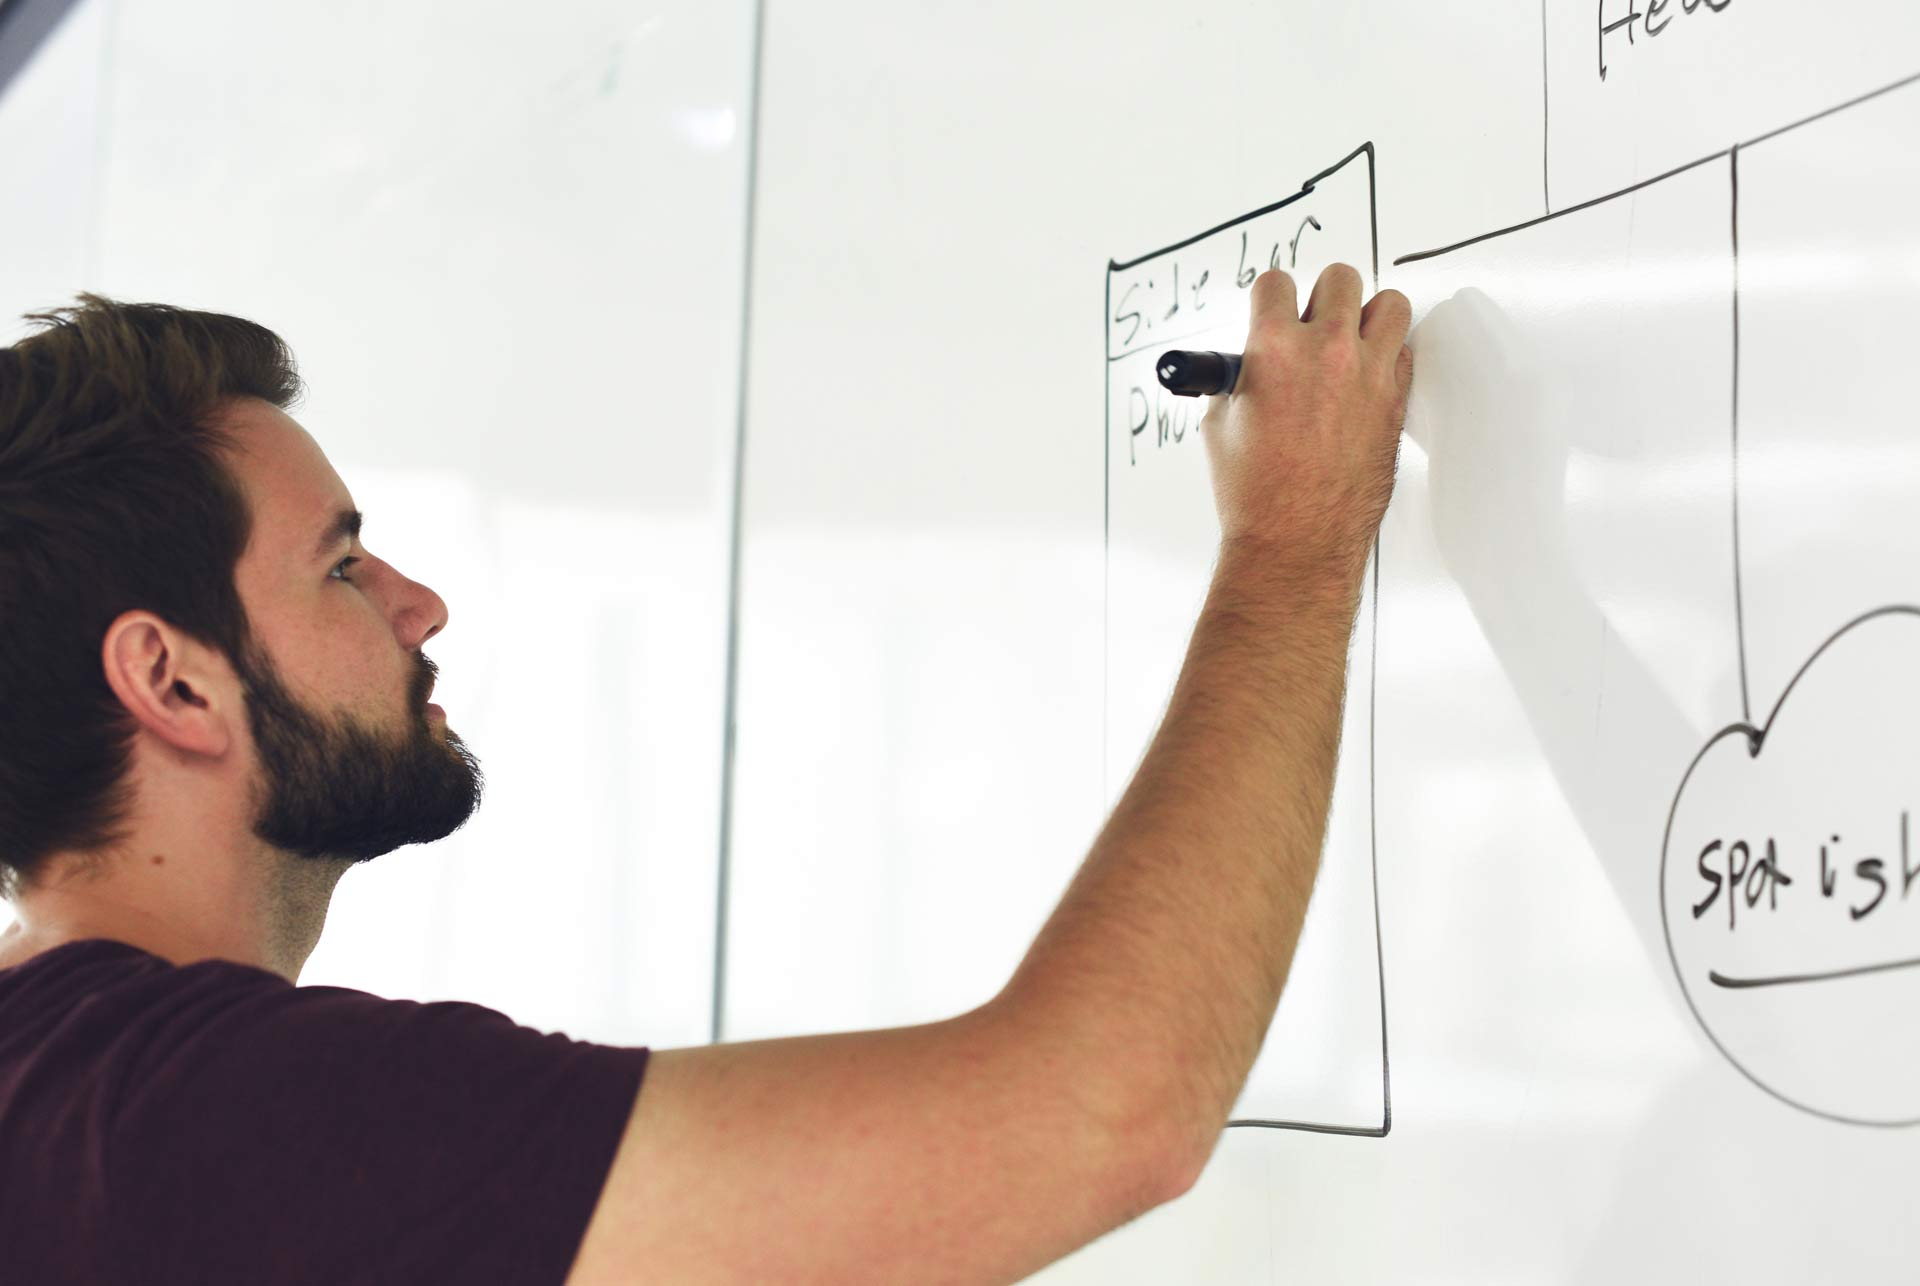 SEO writing website strategy on whiteboard